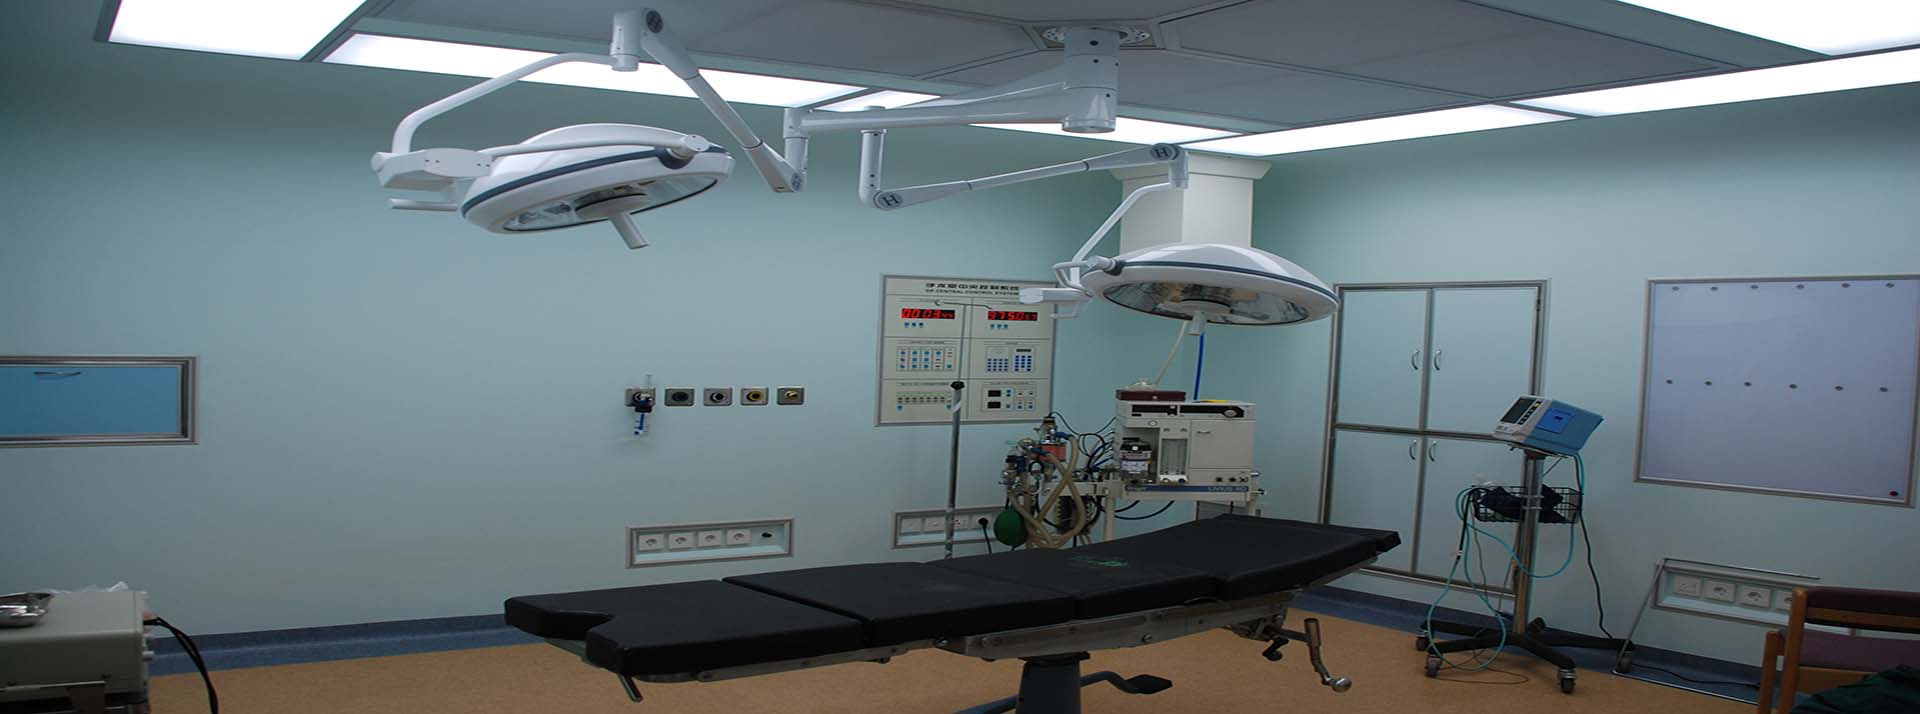 Modular operating theatres